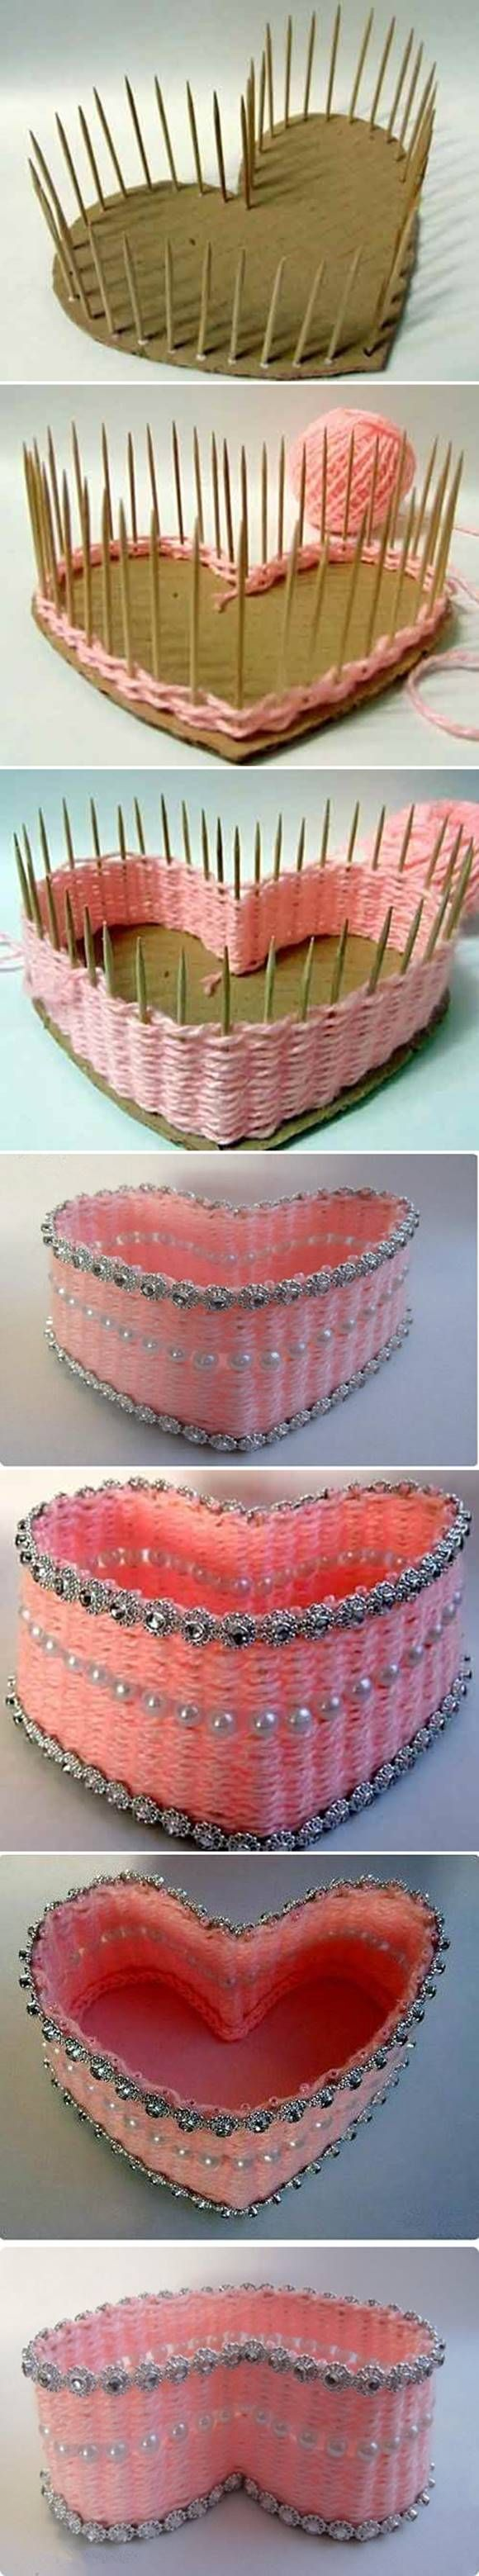 How To Make A Woven Heart Basket : Best basket crafts ideas on